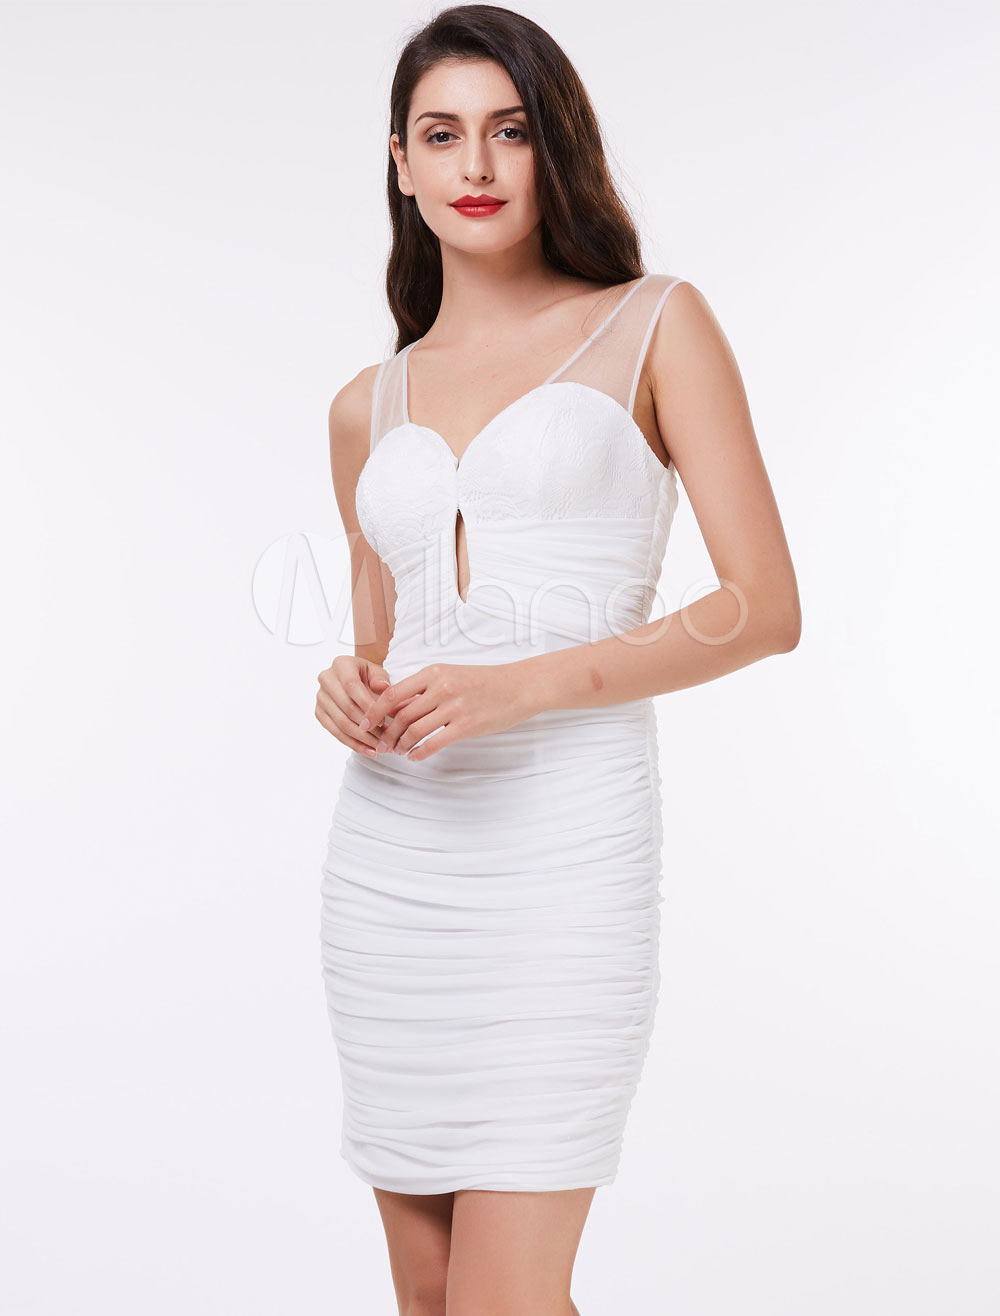 Buy Cocktail Dresses White Sheath Column Ruched Lace Cut Out Illusion Short Party Dress for $52.79 in Milanoo store